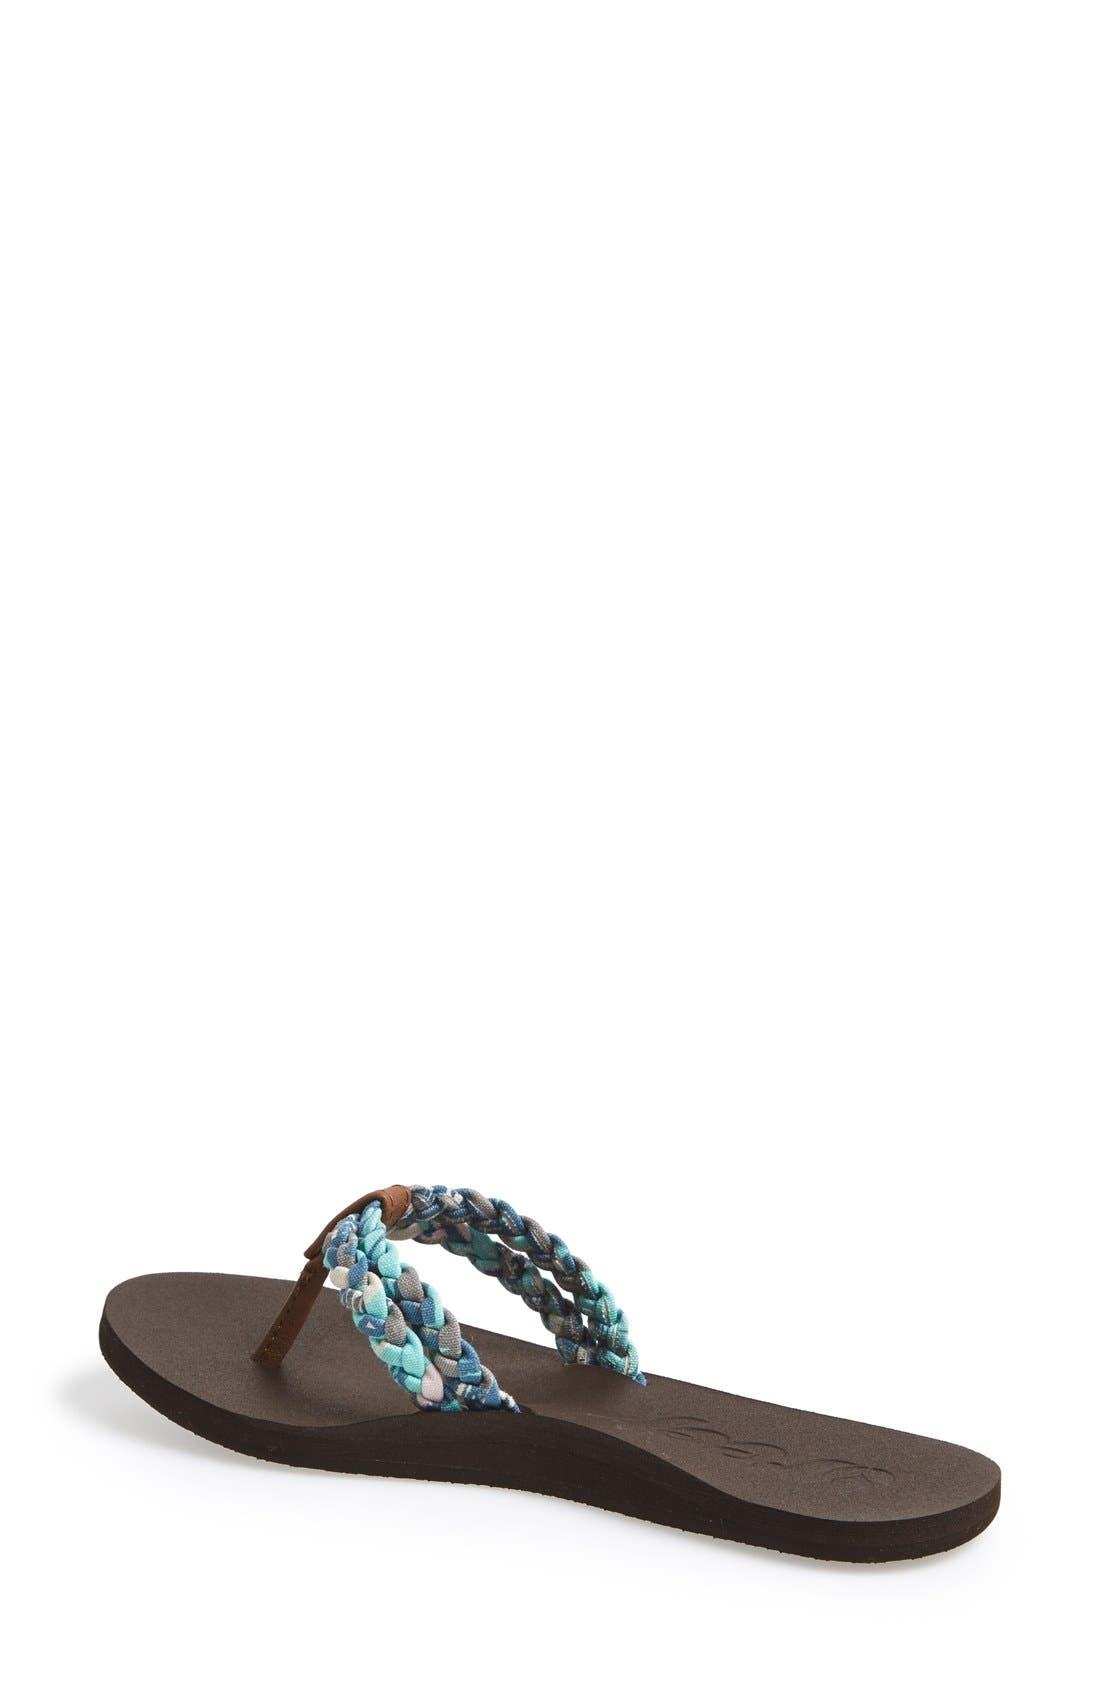 Alternate Image 3  - Reef 'Twisted Sky' Flip-Flop Thong Sandal (Women)